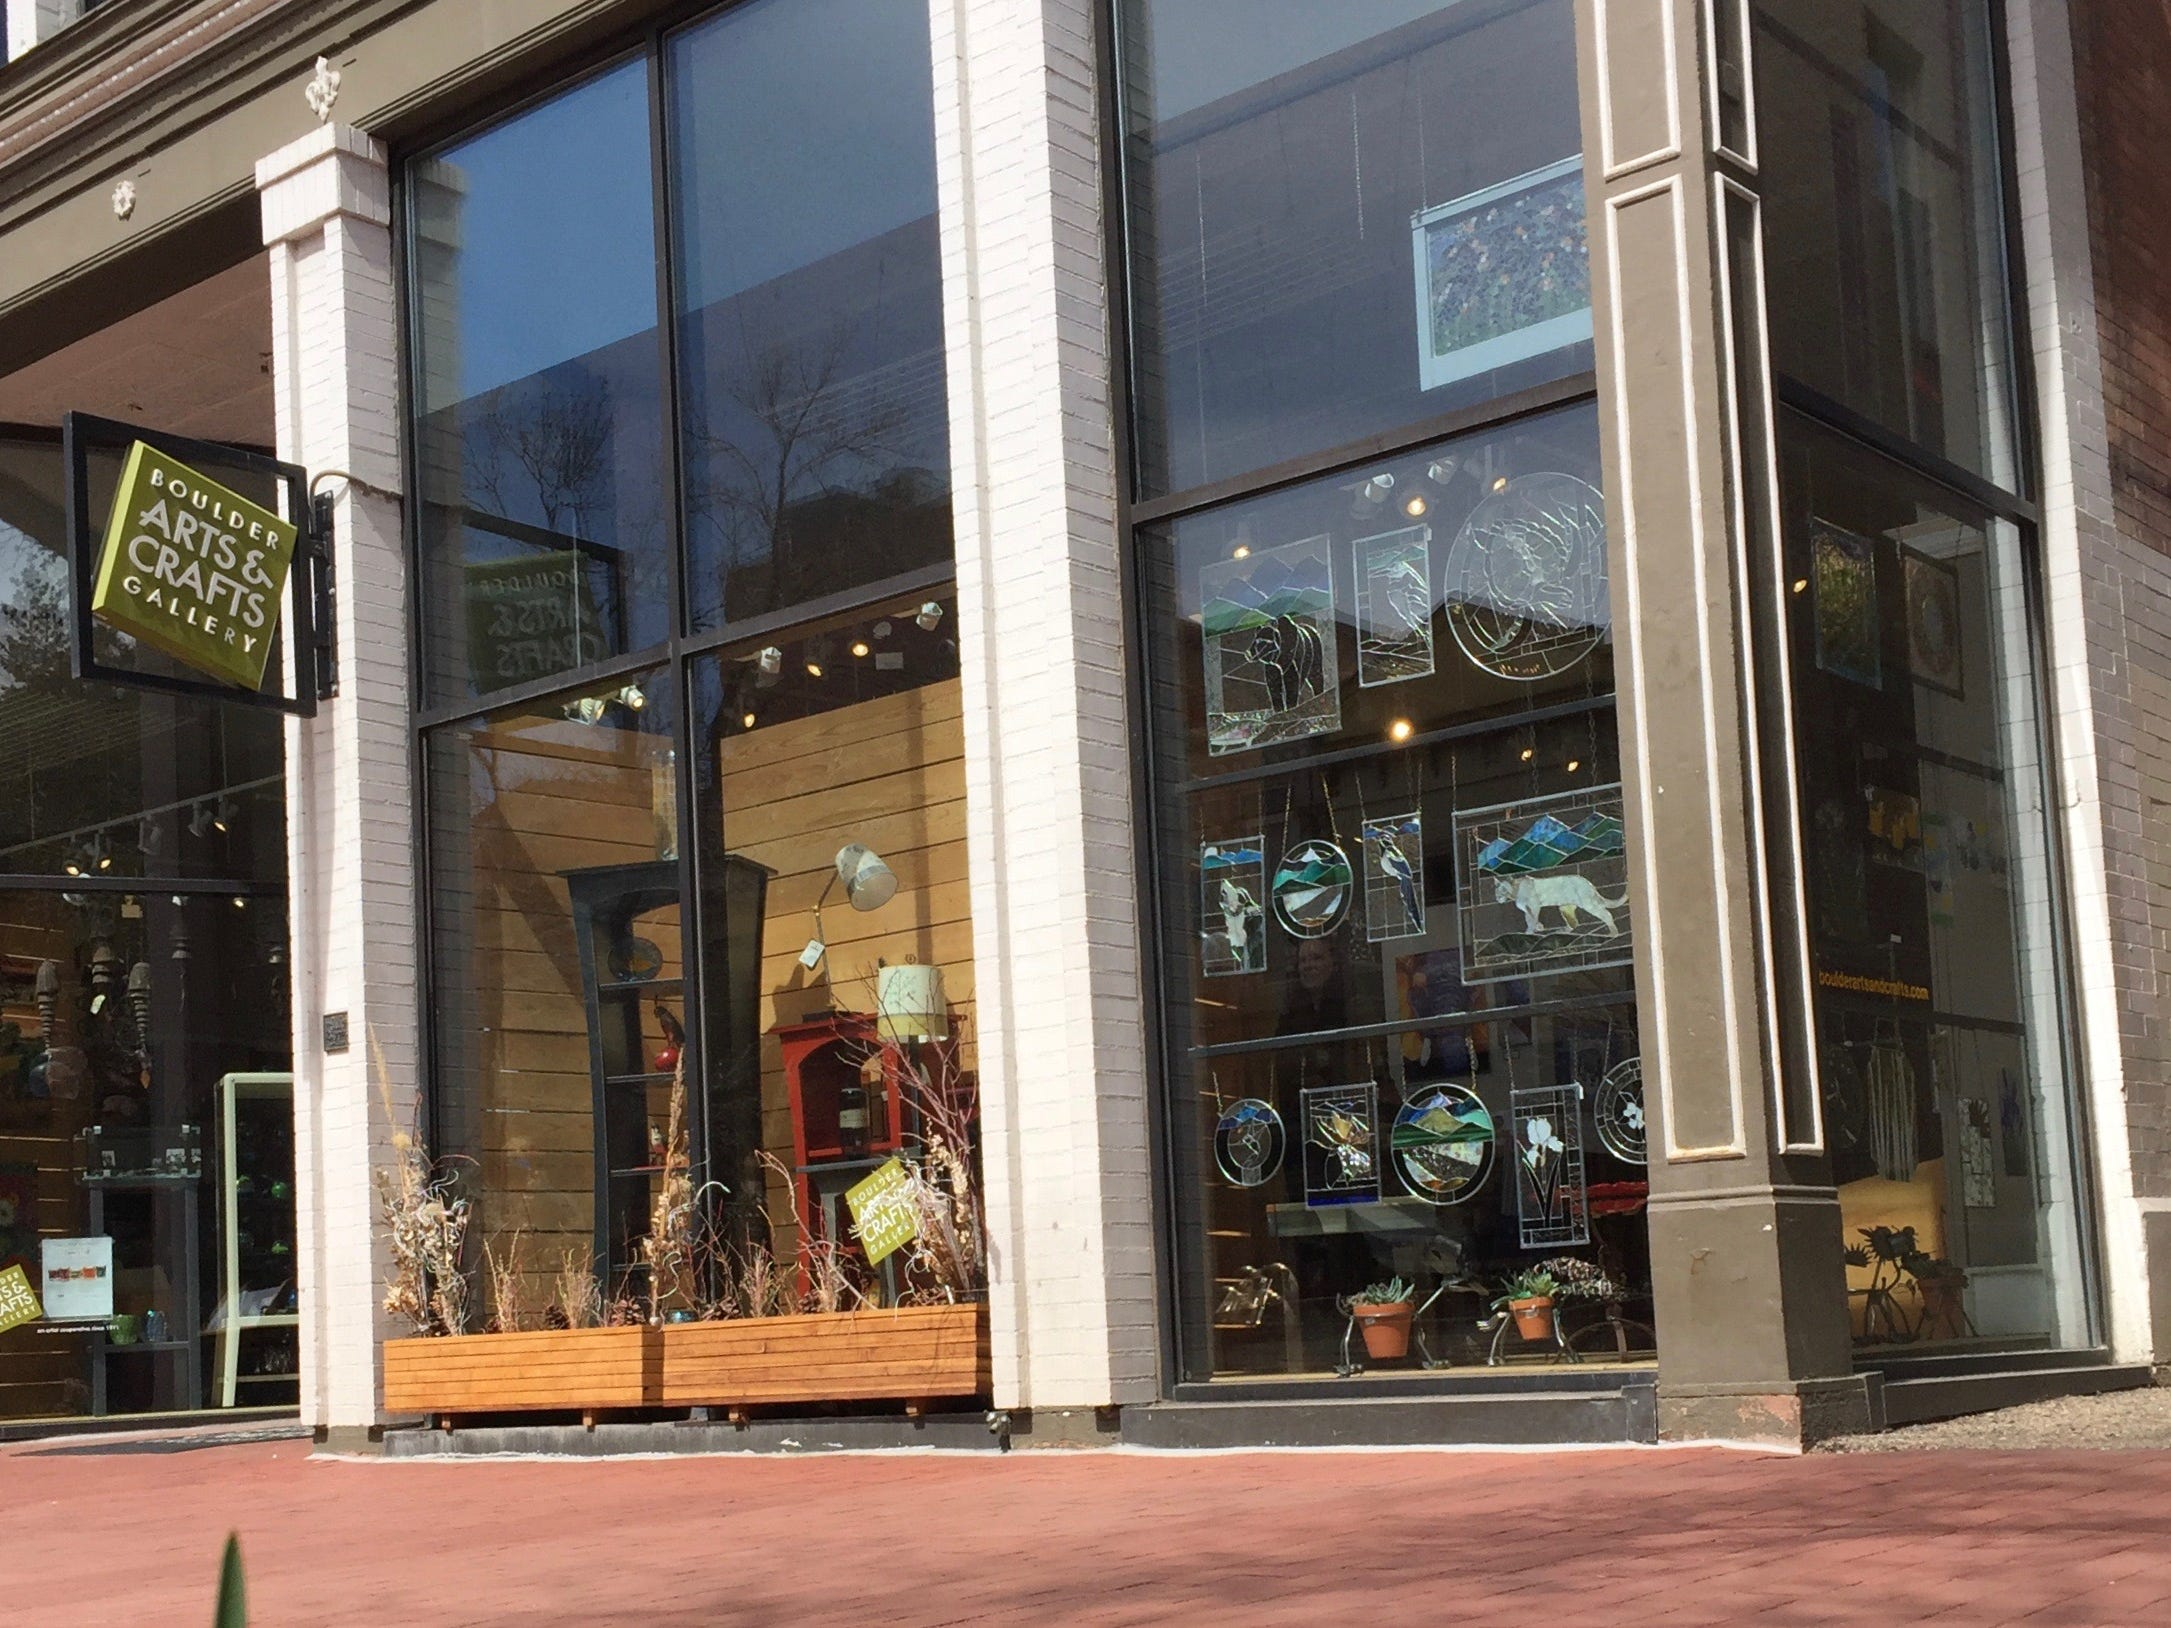 Located on the Pearl Street pedestrian mall, Boulder Arts and Crafts Gallery in Boulder, Colorado, specializes in works from Rocky Mountain makers.